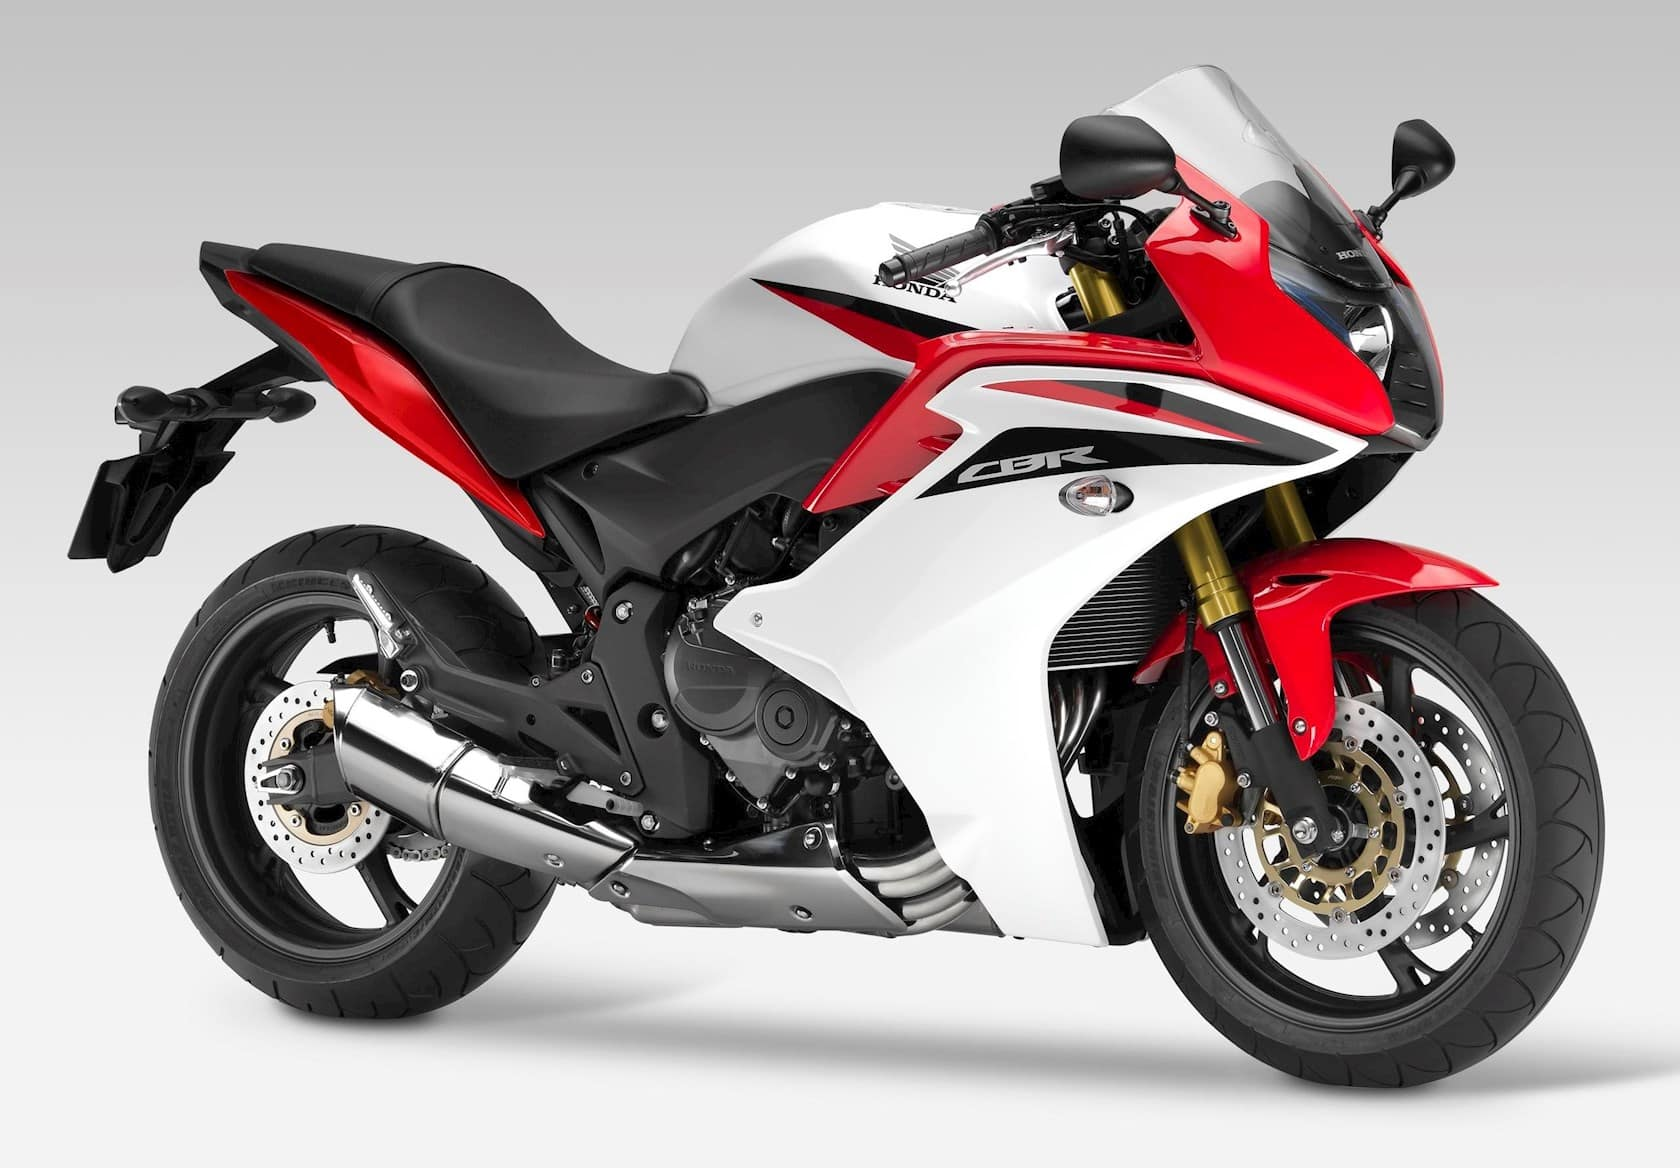 Honda CBR600F 2011 - not a good used motorcycle to buy